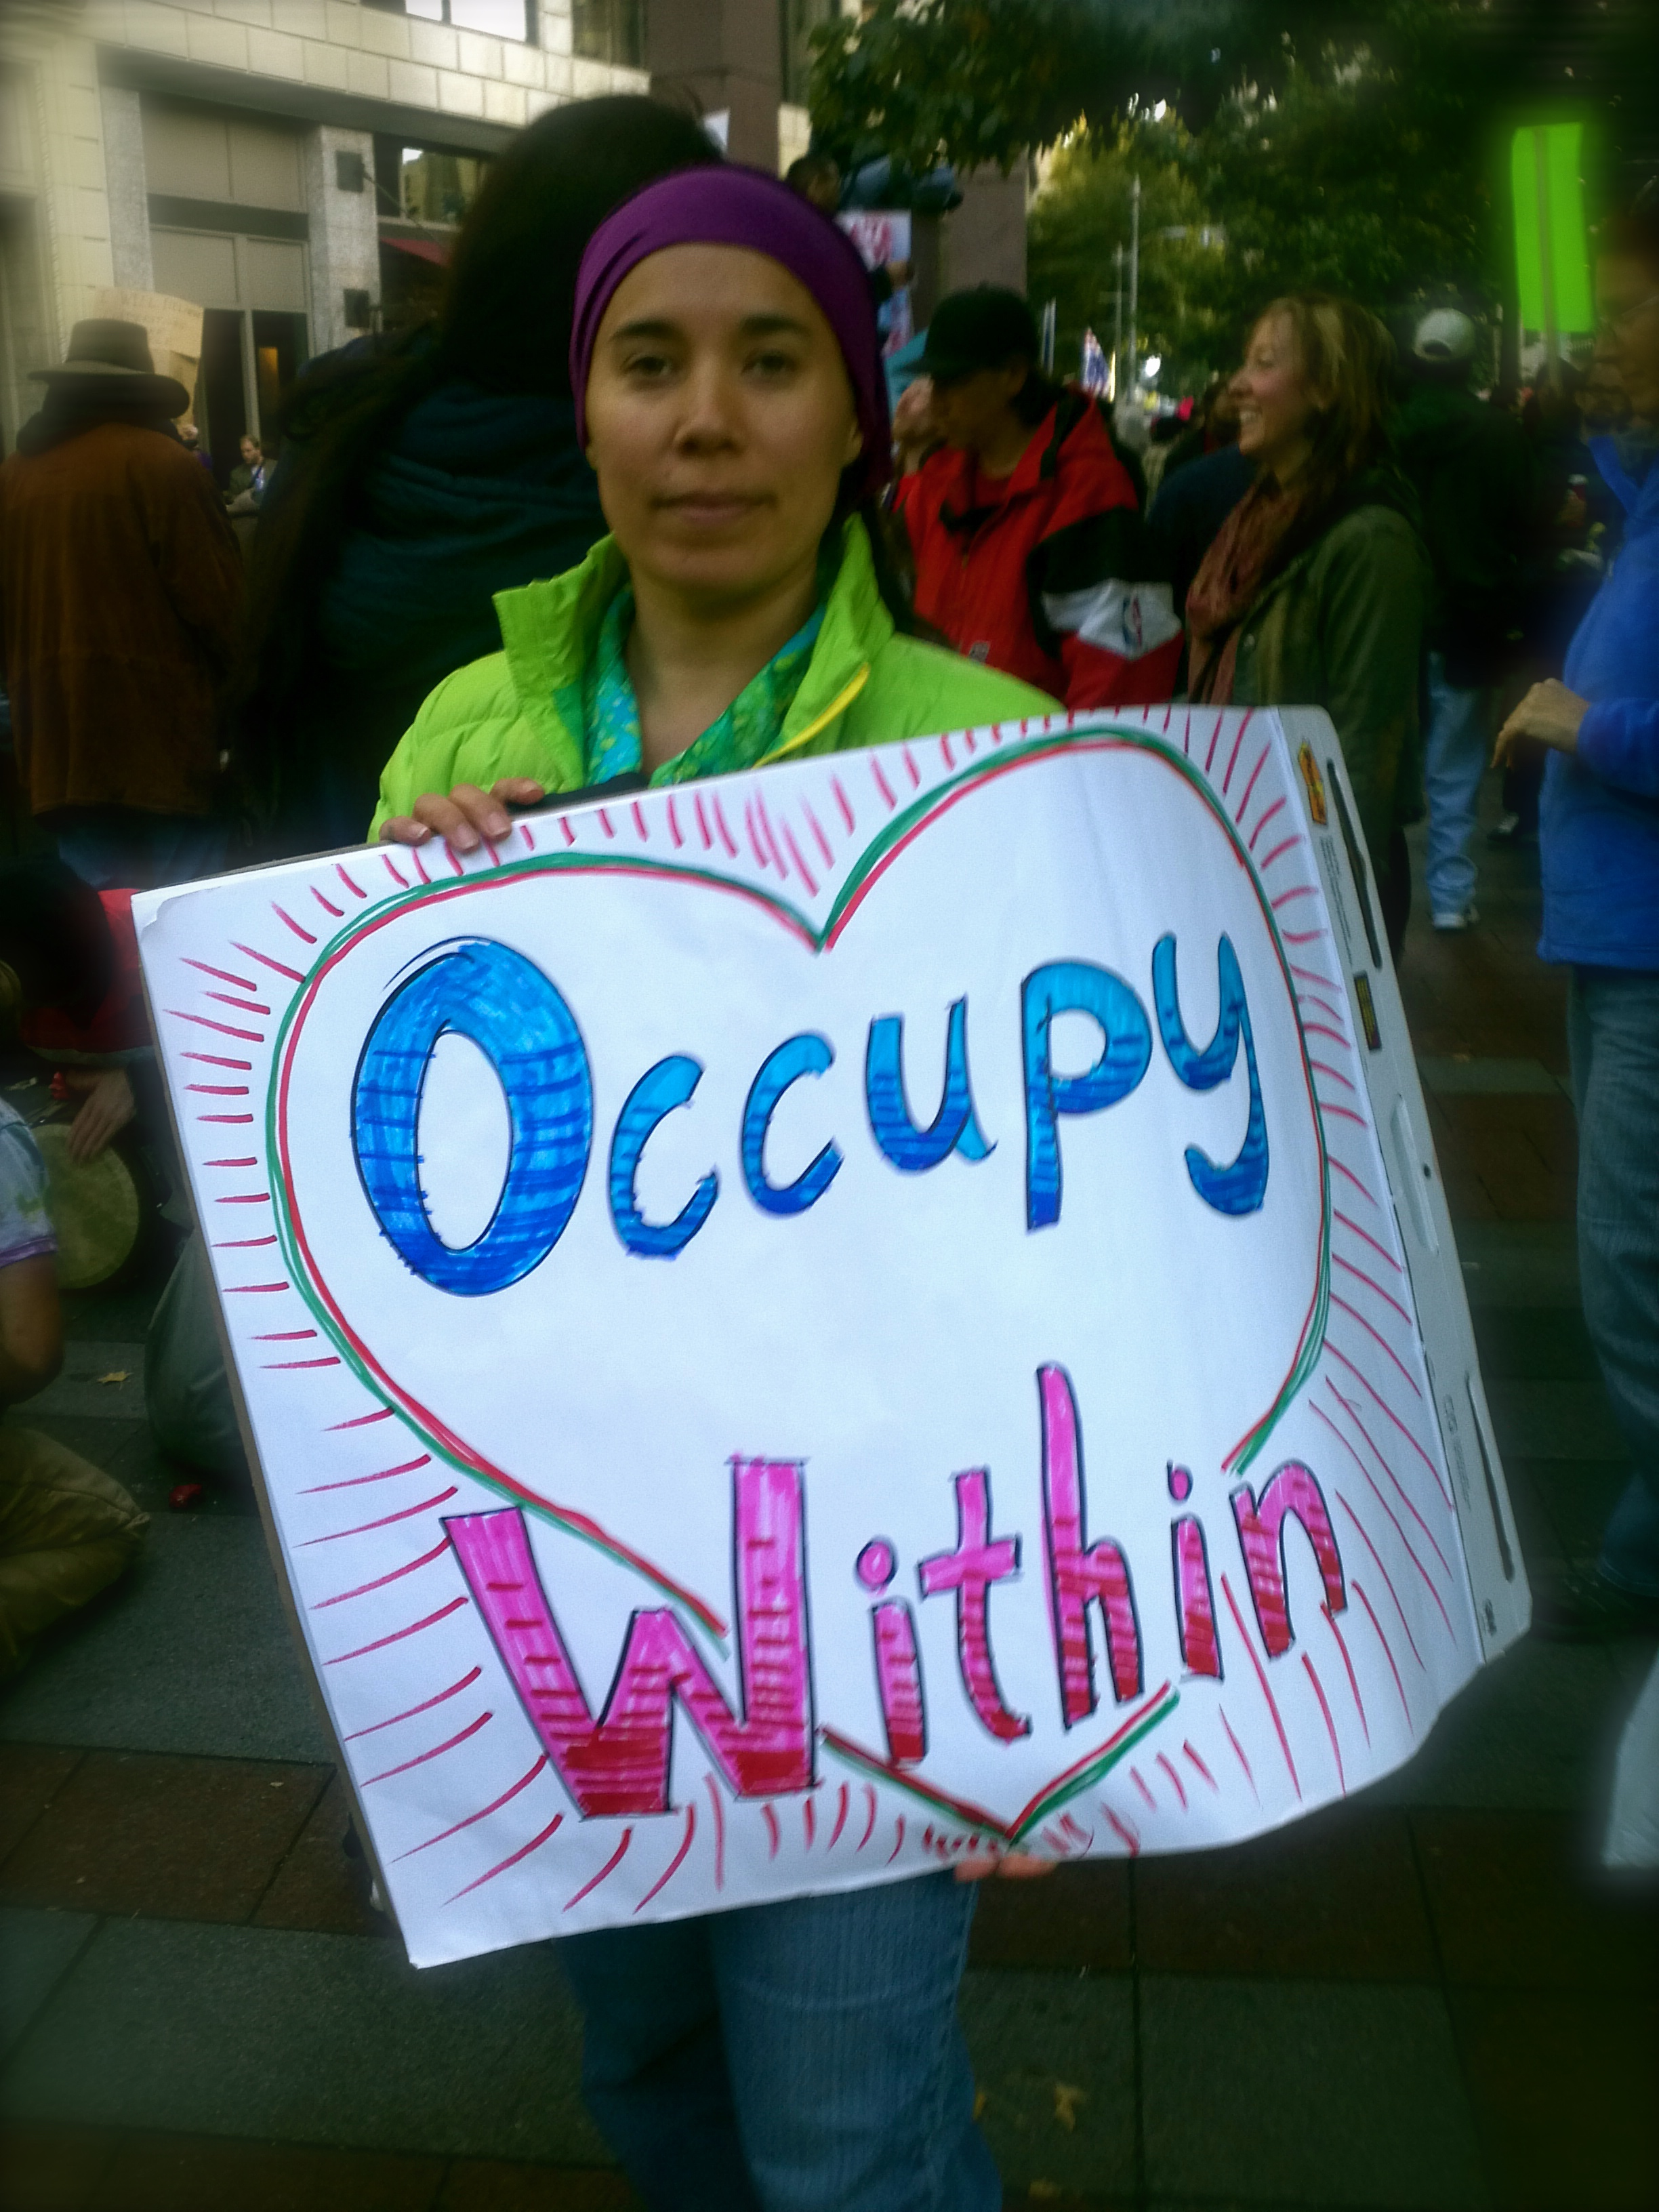 Kristina Katayama Bass going deep at Occupy Seattle/Occupy Earth, Saturday 15 October 2016.